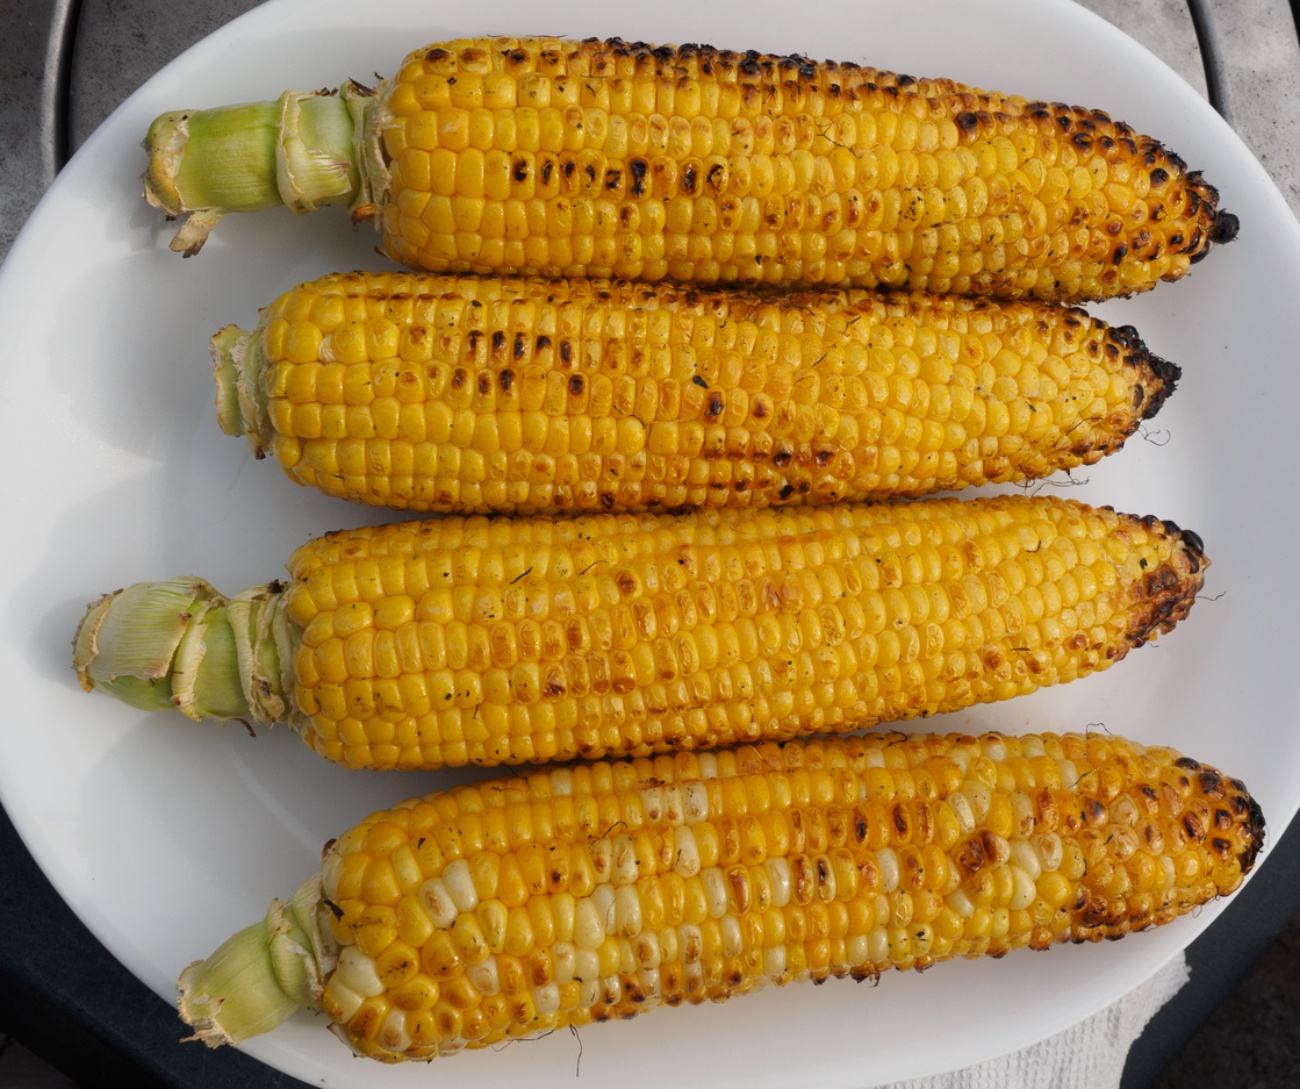 Corn on the cob grilled on the barbecue, laid out on a white plate